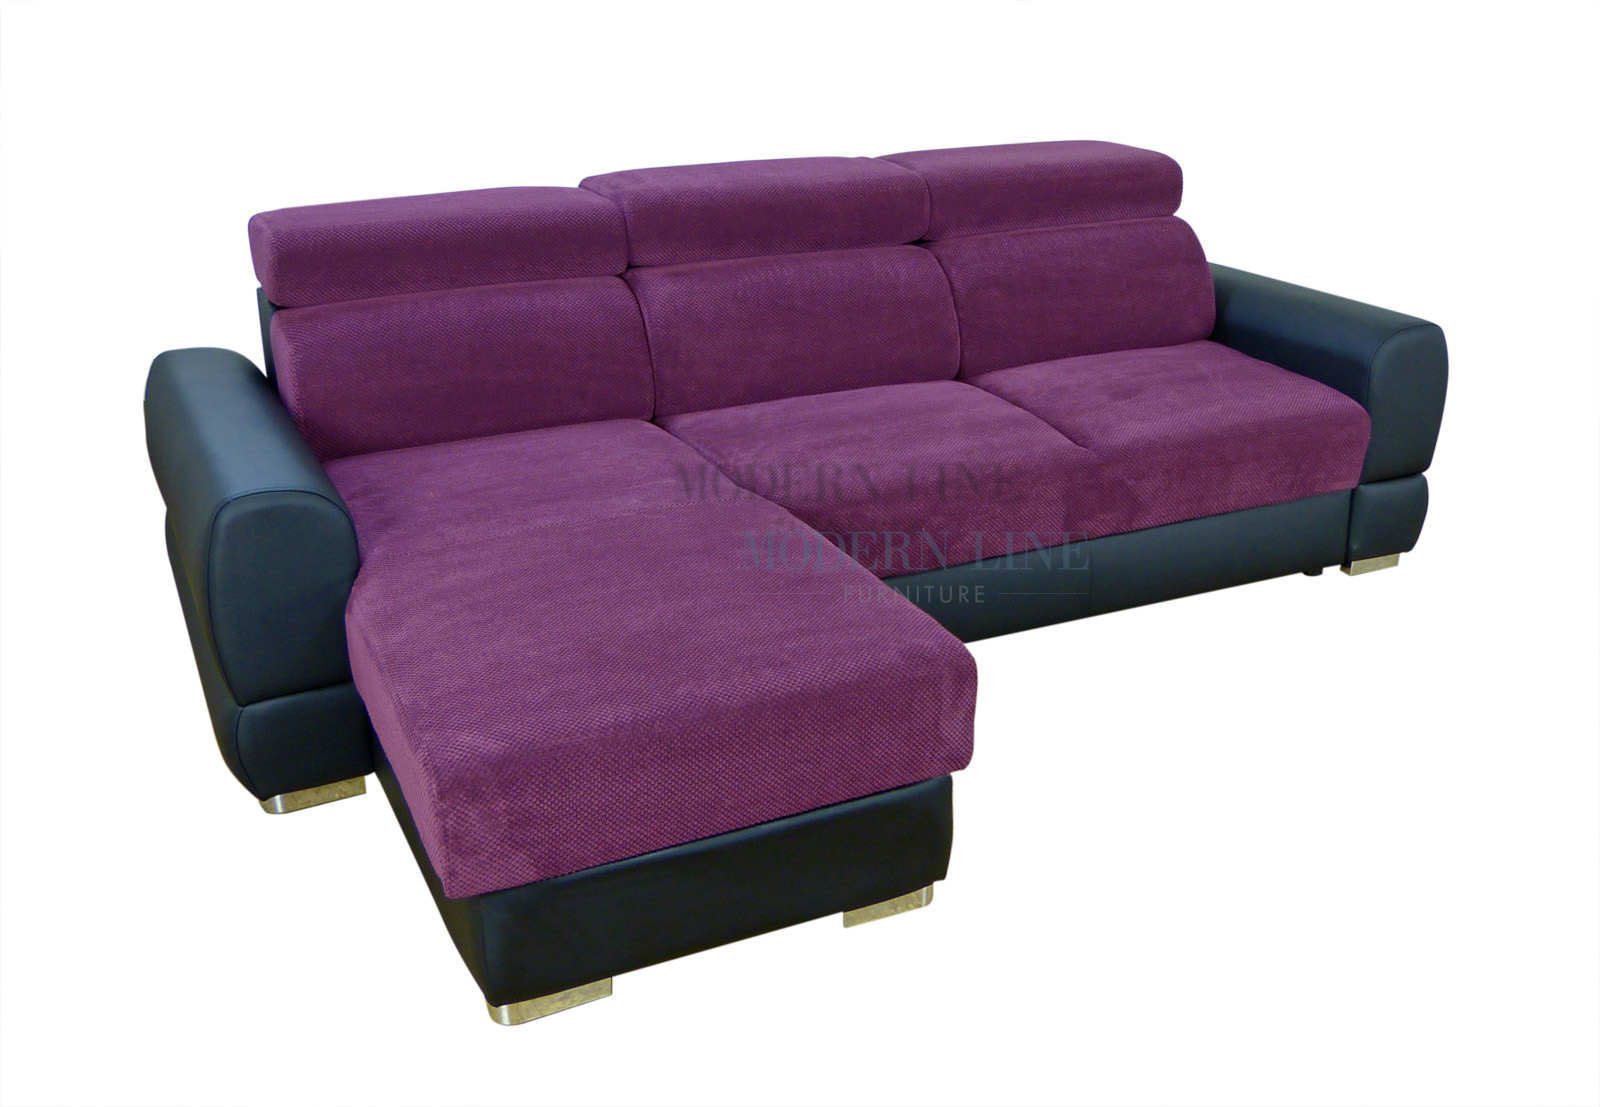 Modern Line Furniture - Commercial Furniture - Custom Made Furniture | Universal Design - Modern Leather u0026 Fabric Sectional Sofa Sleeper With Storage  sc 1 st  Modern Line Furniture : purple sectional sofa chaise - Sectionals, Sofas & Couches